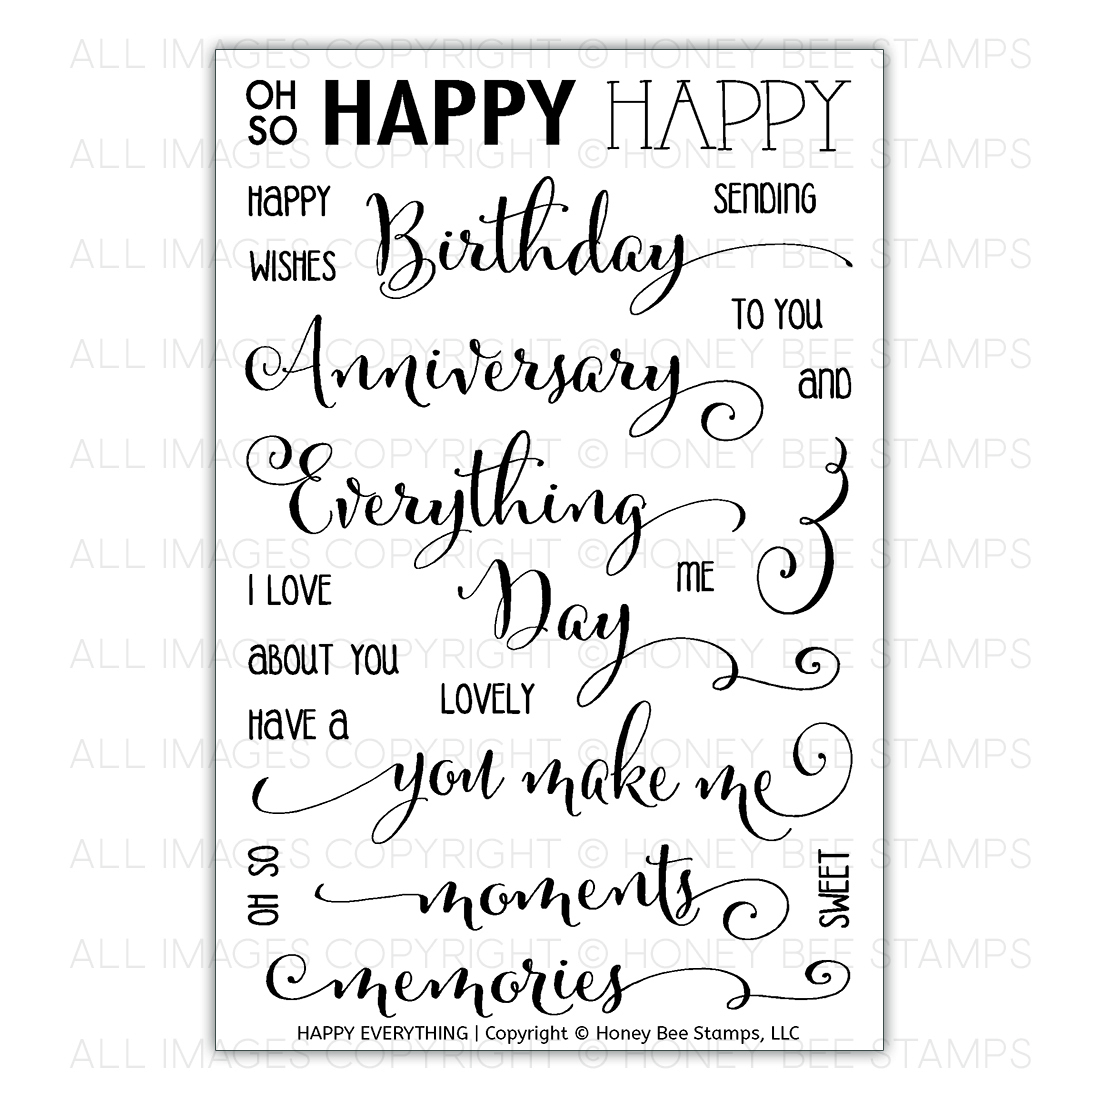 Honey Bee Stamps - Happy Everything | 4x6 Stamp Set